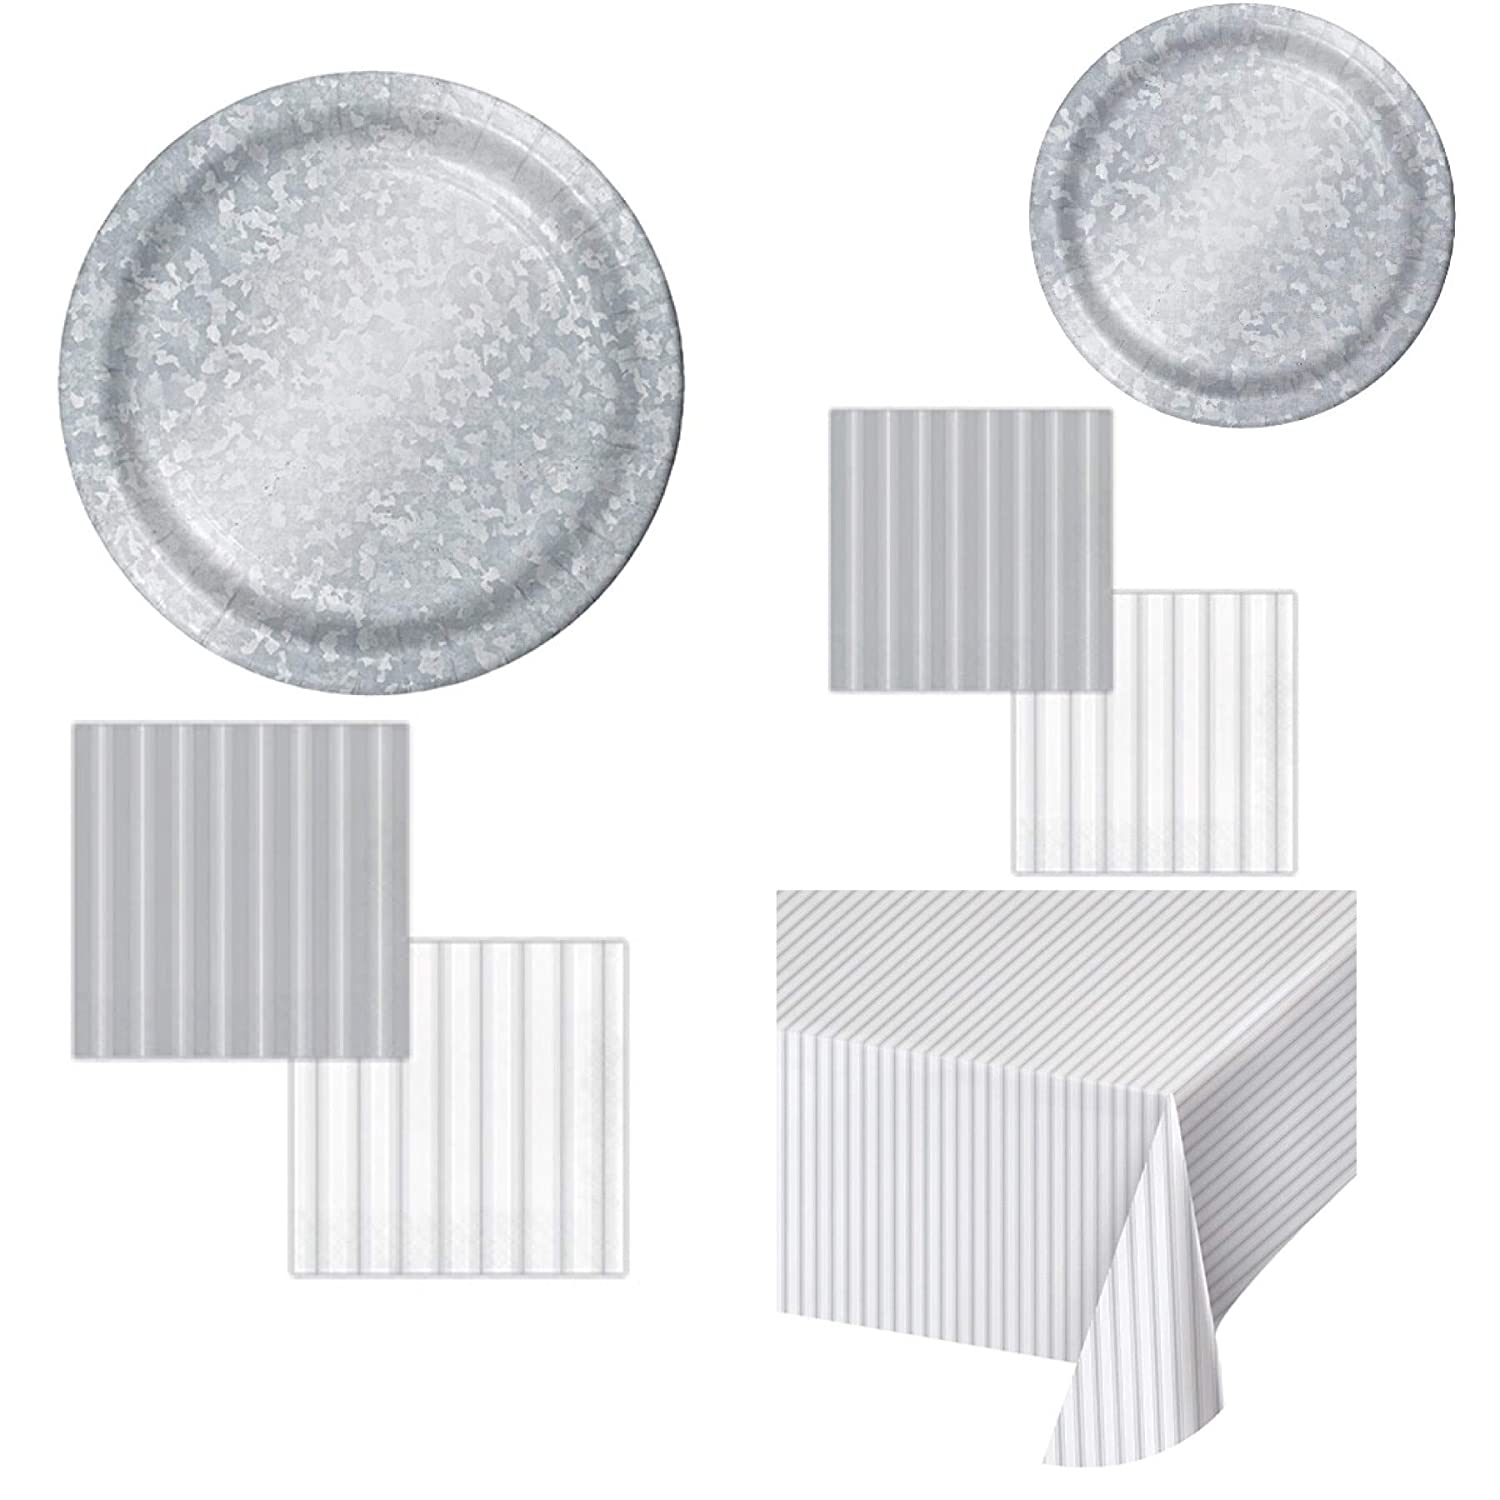 Dessert Plates Tablecover Beverage Napkins Guest Paper Towel Farmhouse Theme Galvanized Paper Party Supplies Serves 16: Dinner plates